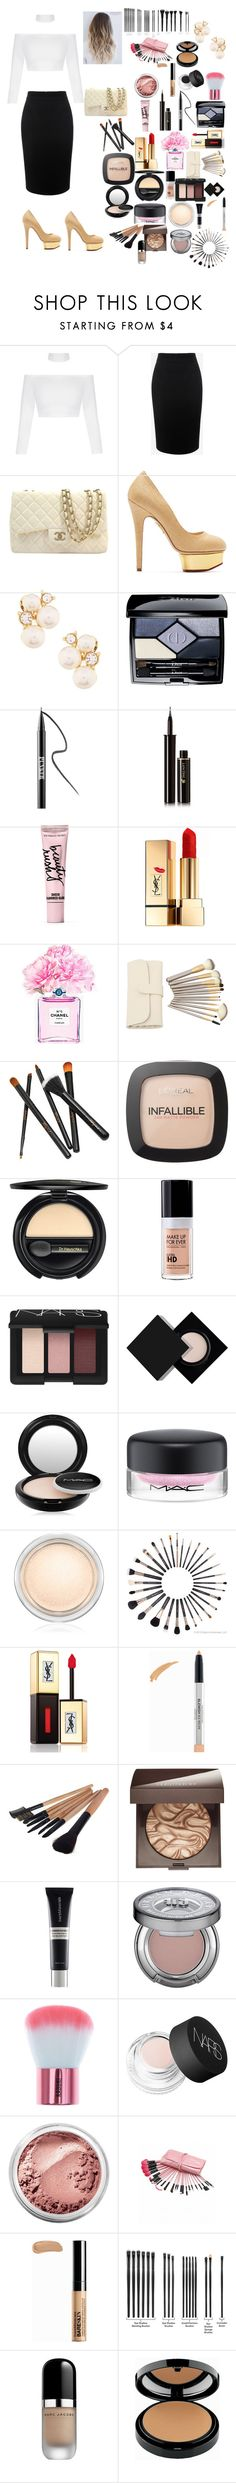 """""""Disco                            Party                       """" by fashion-dora15 ❤ liked on Polyvore featuring Alexander McQueen, Chanel, Charlotte Olympia, Anne Klein, Christian Dior, Ardency Inn, Lancôme, Beauty Rush, Yves Saint Laurent and L'Oréal Paris"""